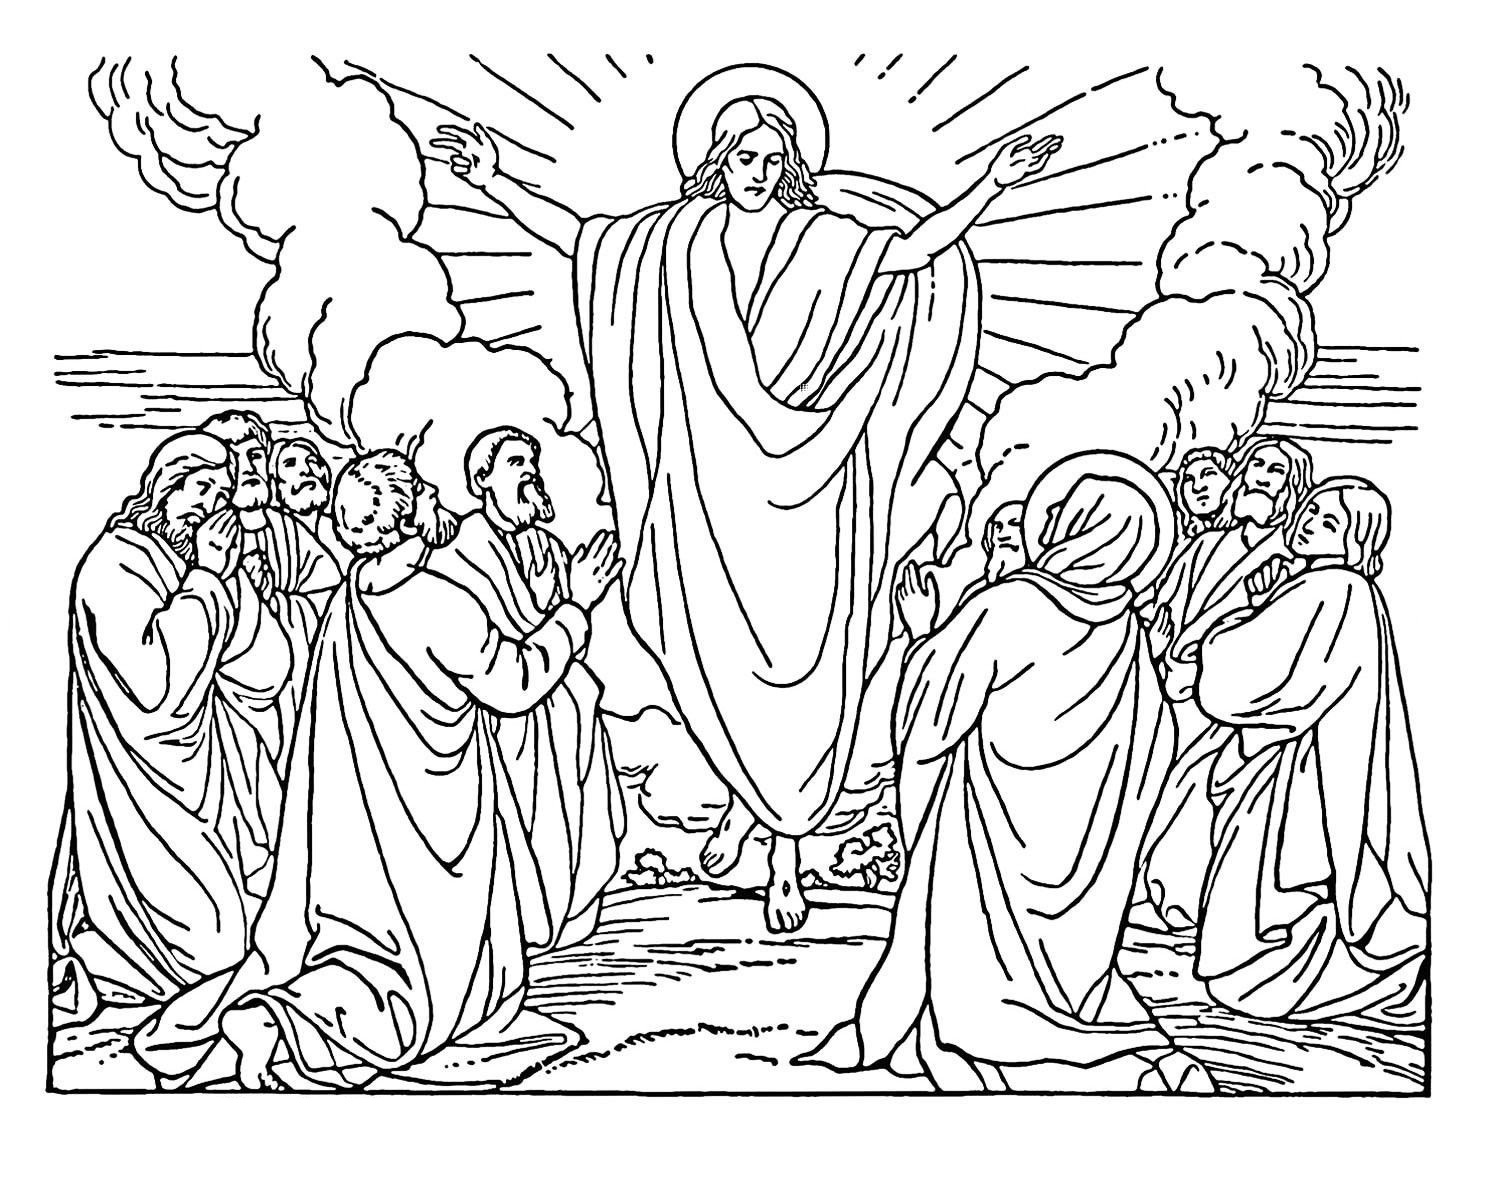 black and white bible coloring pages | Bible Coloring Pages. Teach your Kids through Coloring.